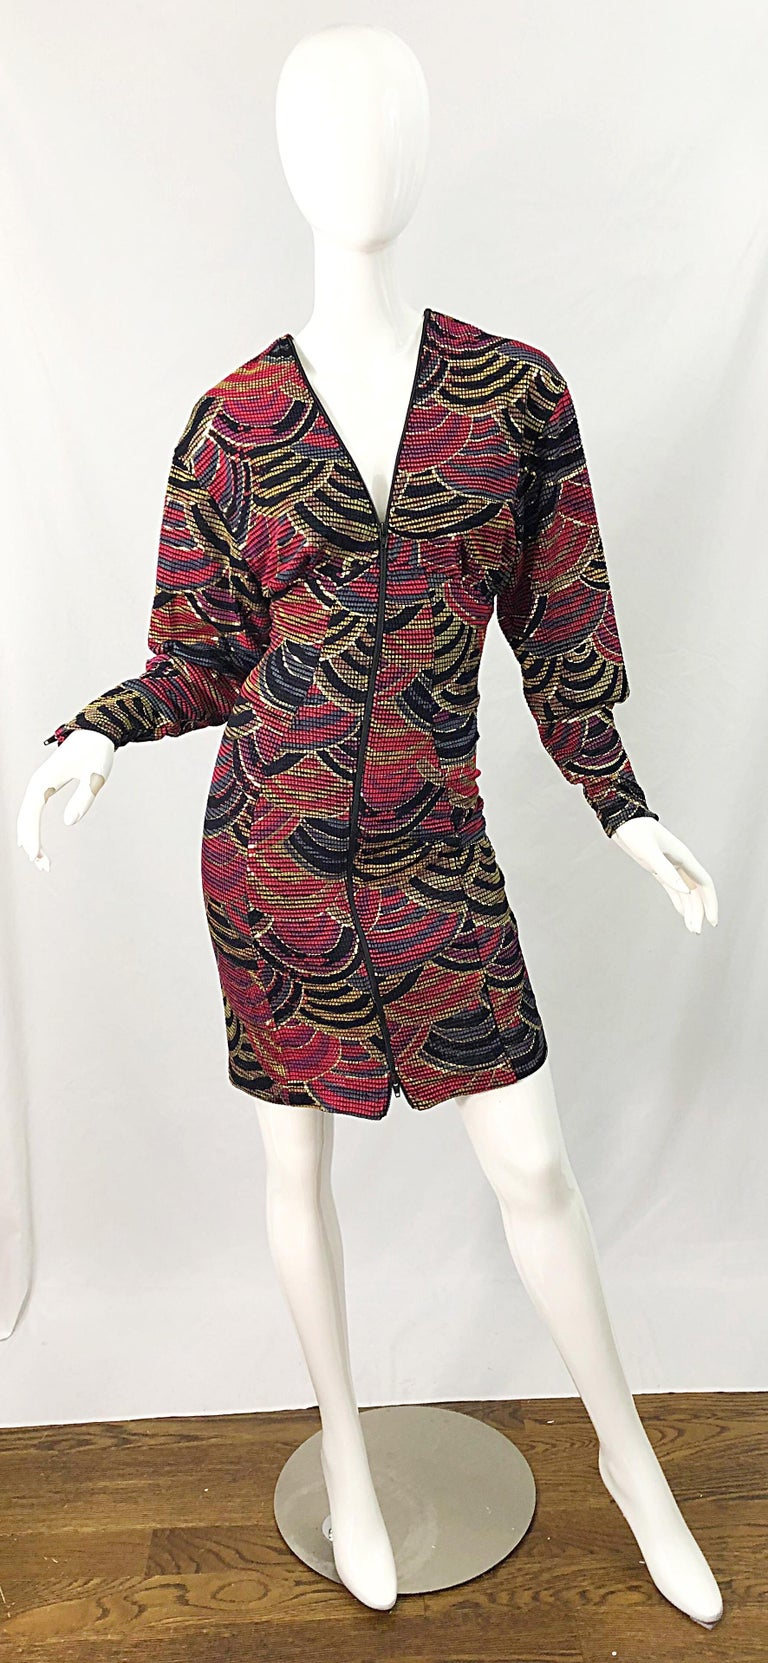 Black 1980s Hand Painted Reversible Red + Gold + Green Vintage 80s Avant Garde Dress For Sale